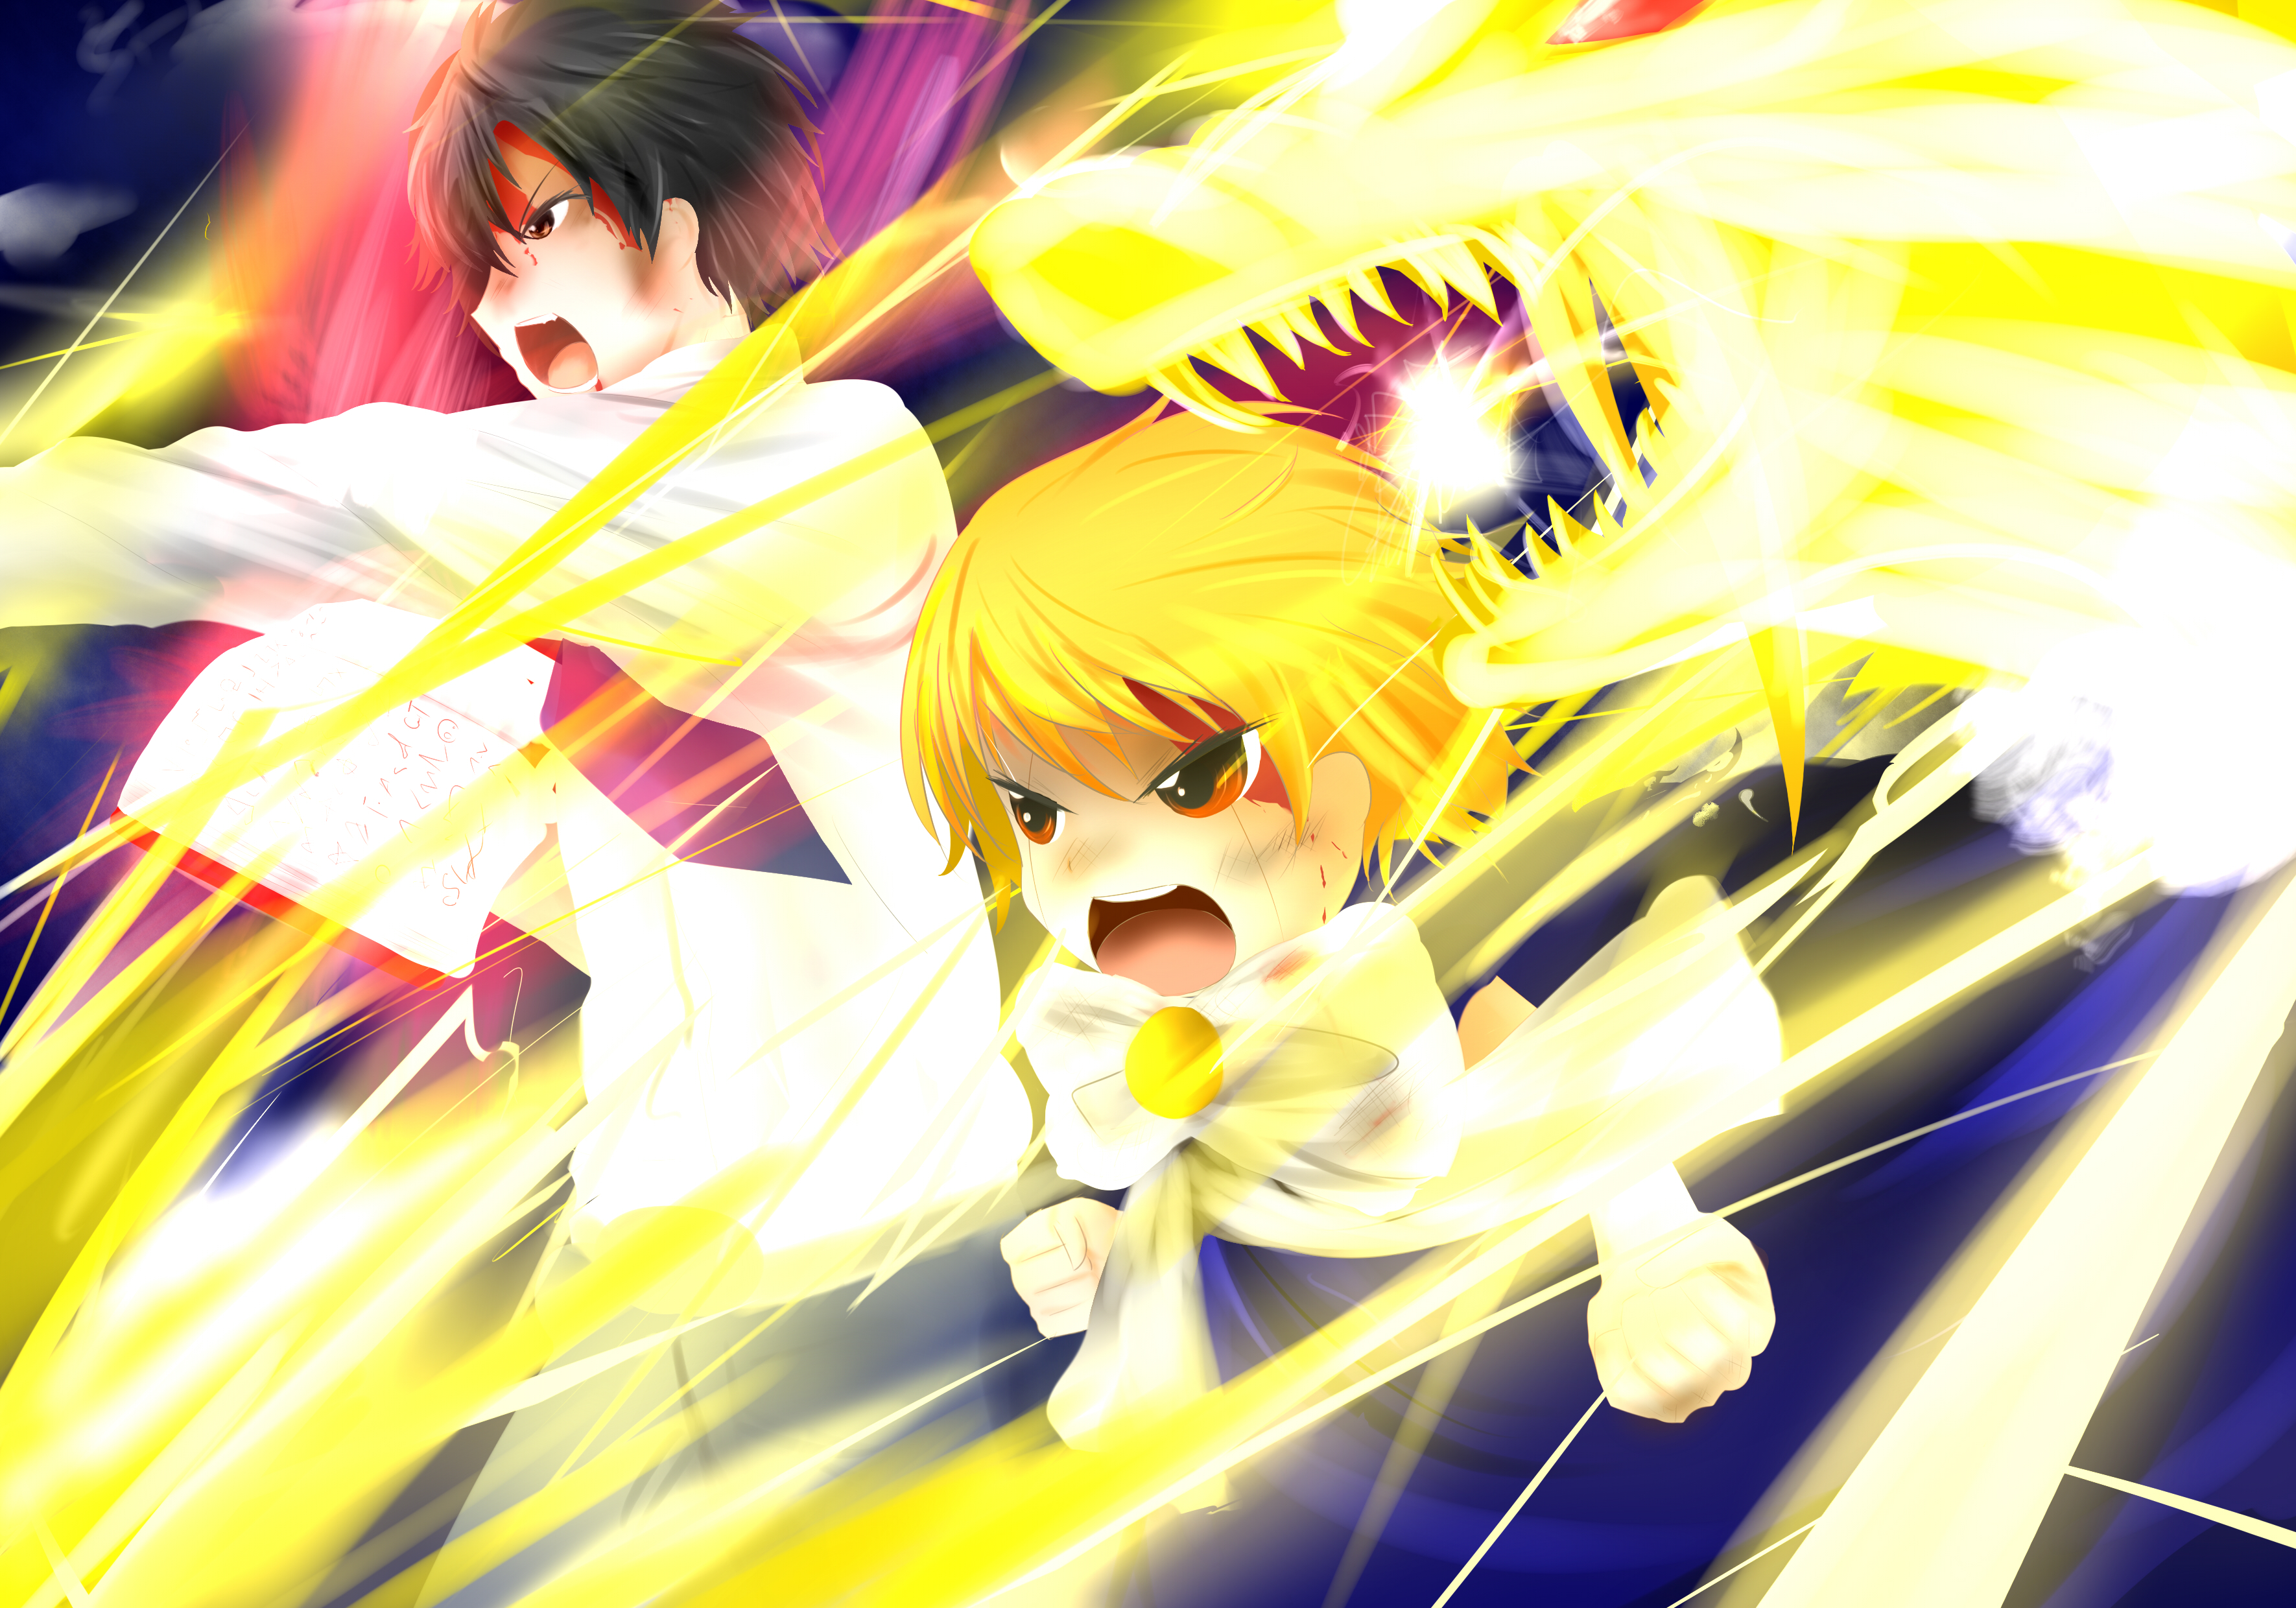 Zatch Bell Backgrounds, Compatible - PC, Mobile, Gadgets  3541x2480 px